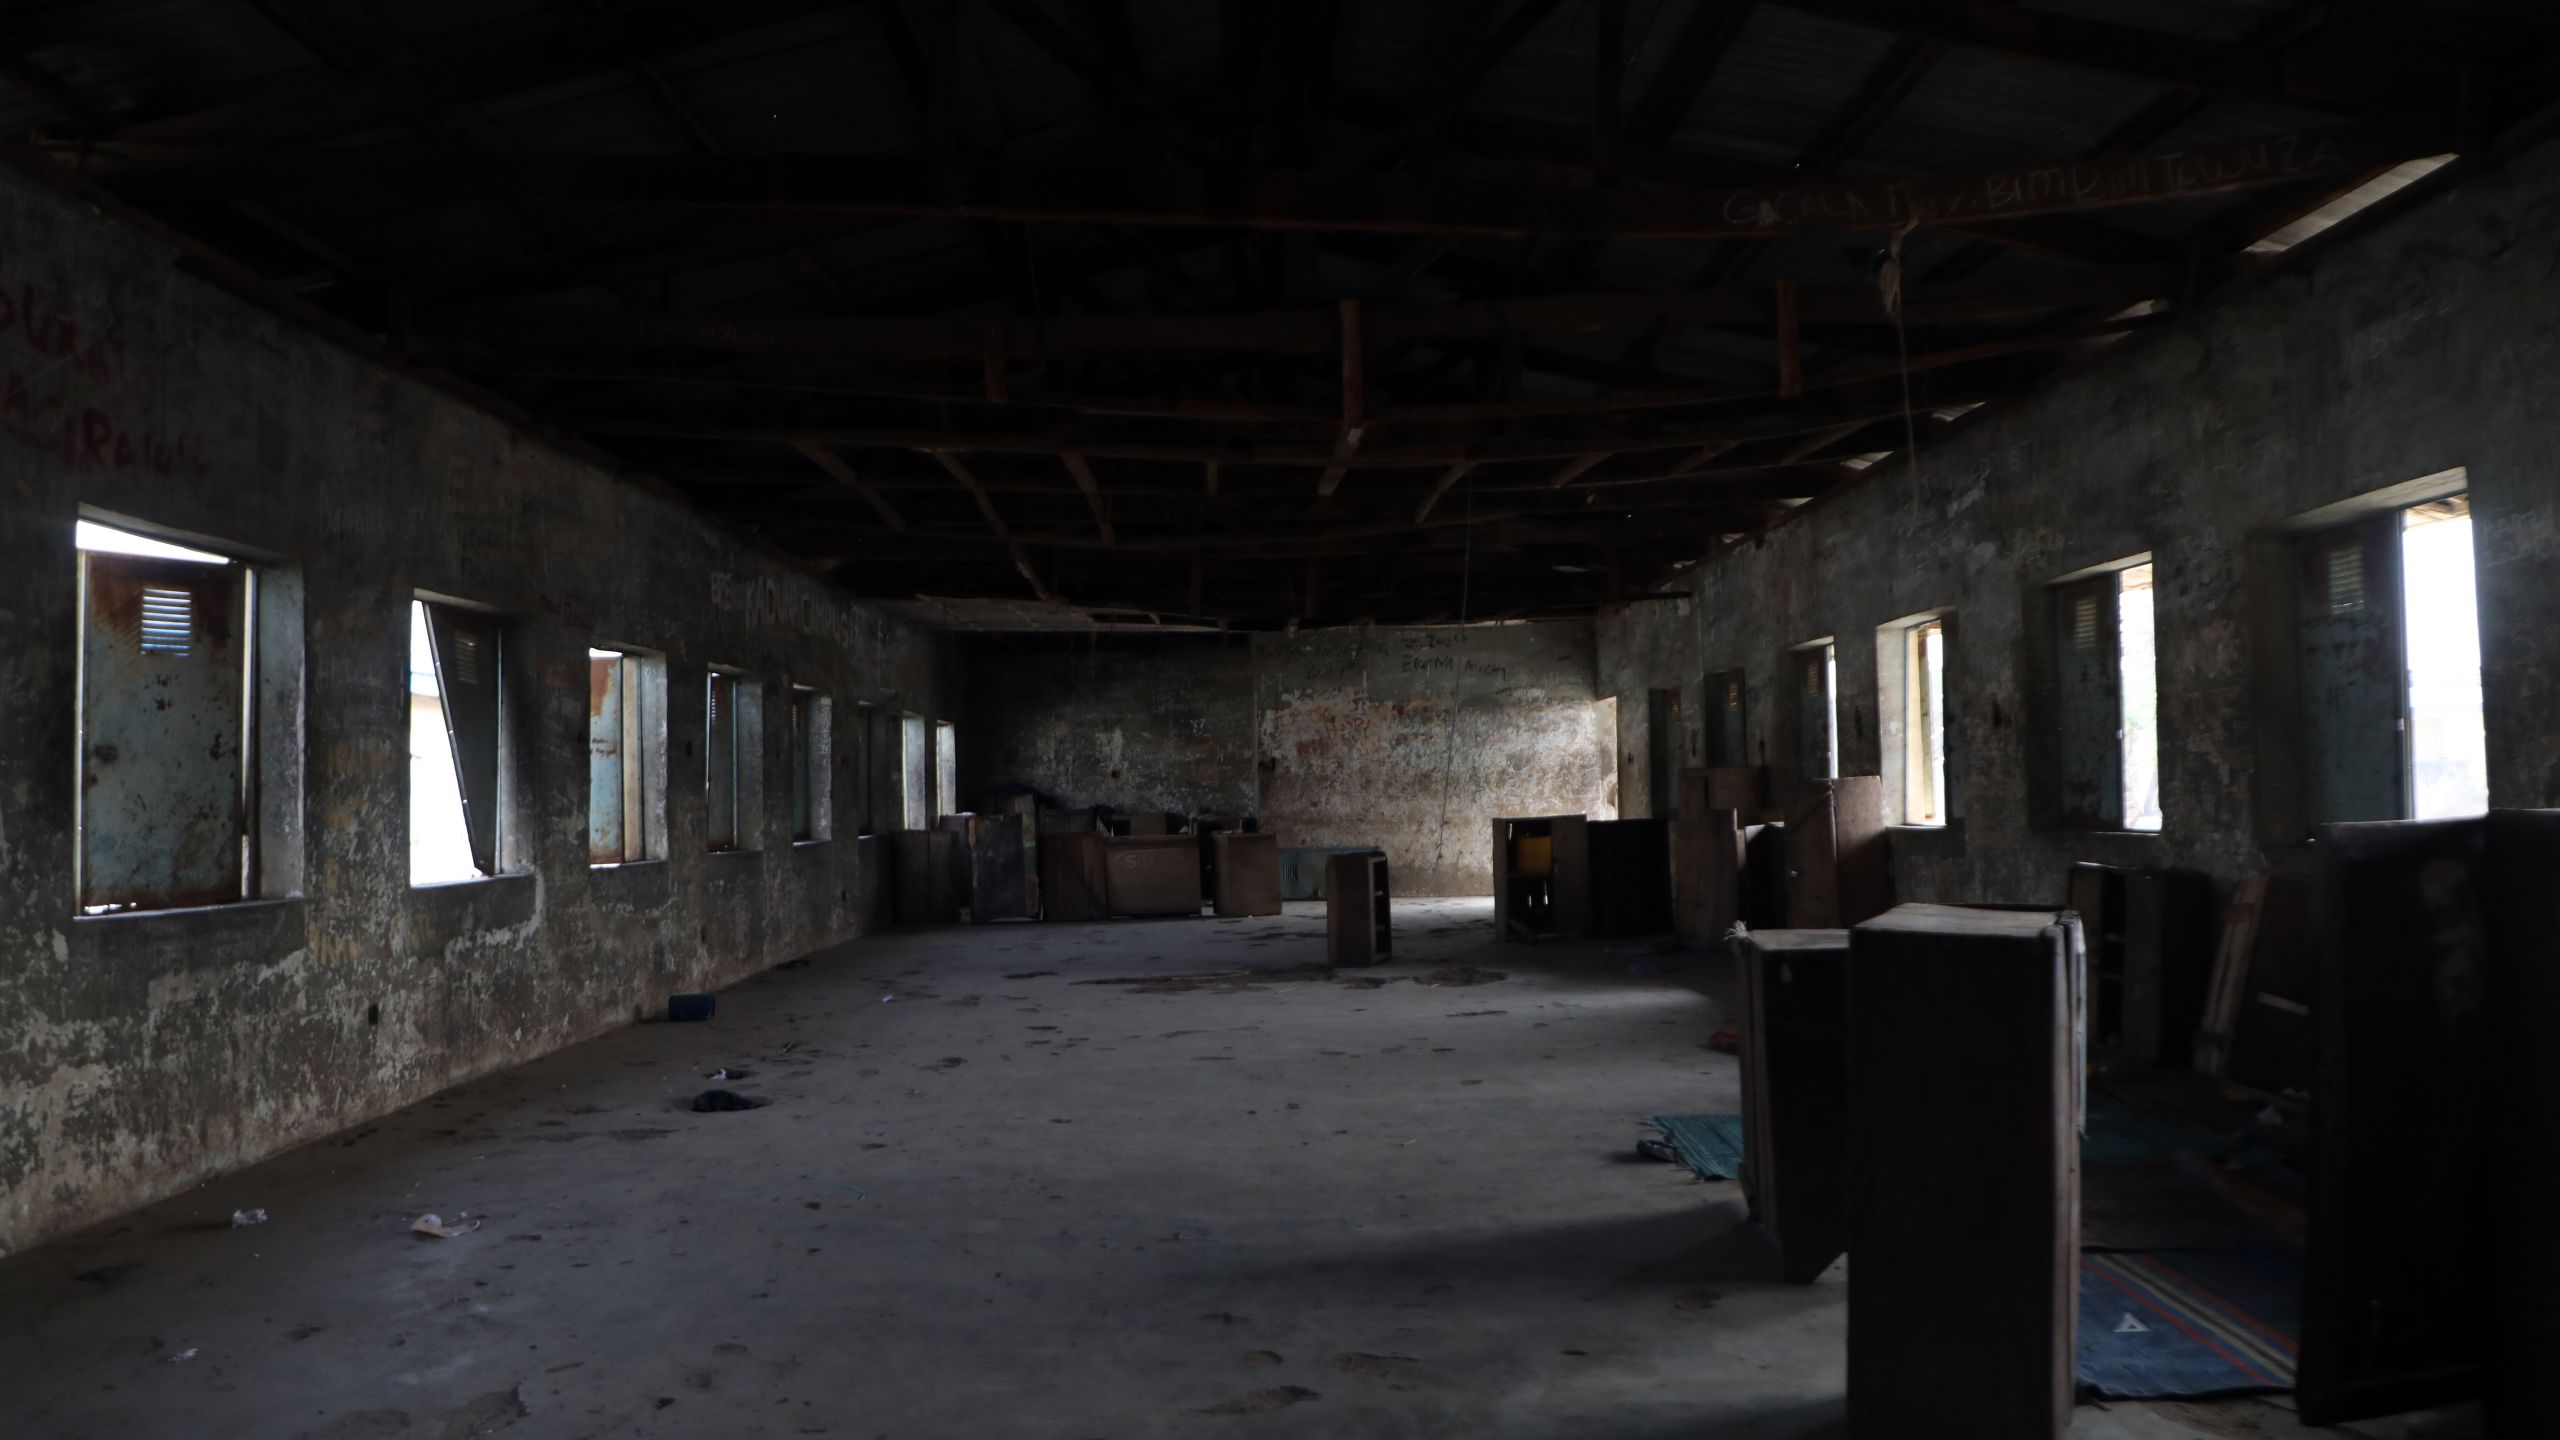 An empty dormitory inside Government Science College where gunmen kidnapped dozens of students and staffs, in Kagara, Rafi Local Government Niger State, Nigeria on Feb. 18, 2021. (Kola Sulaimon / AFP via Getty Images)